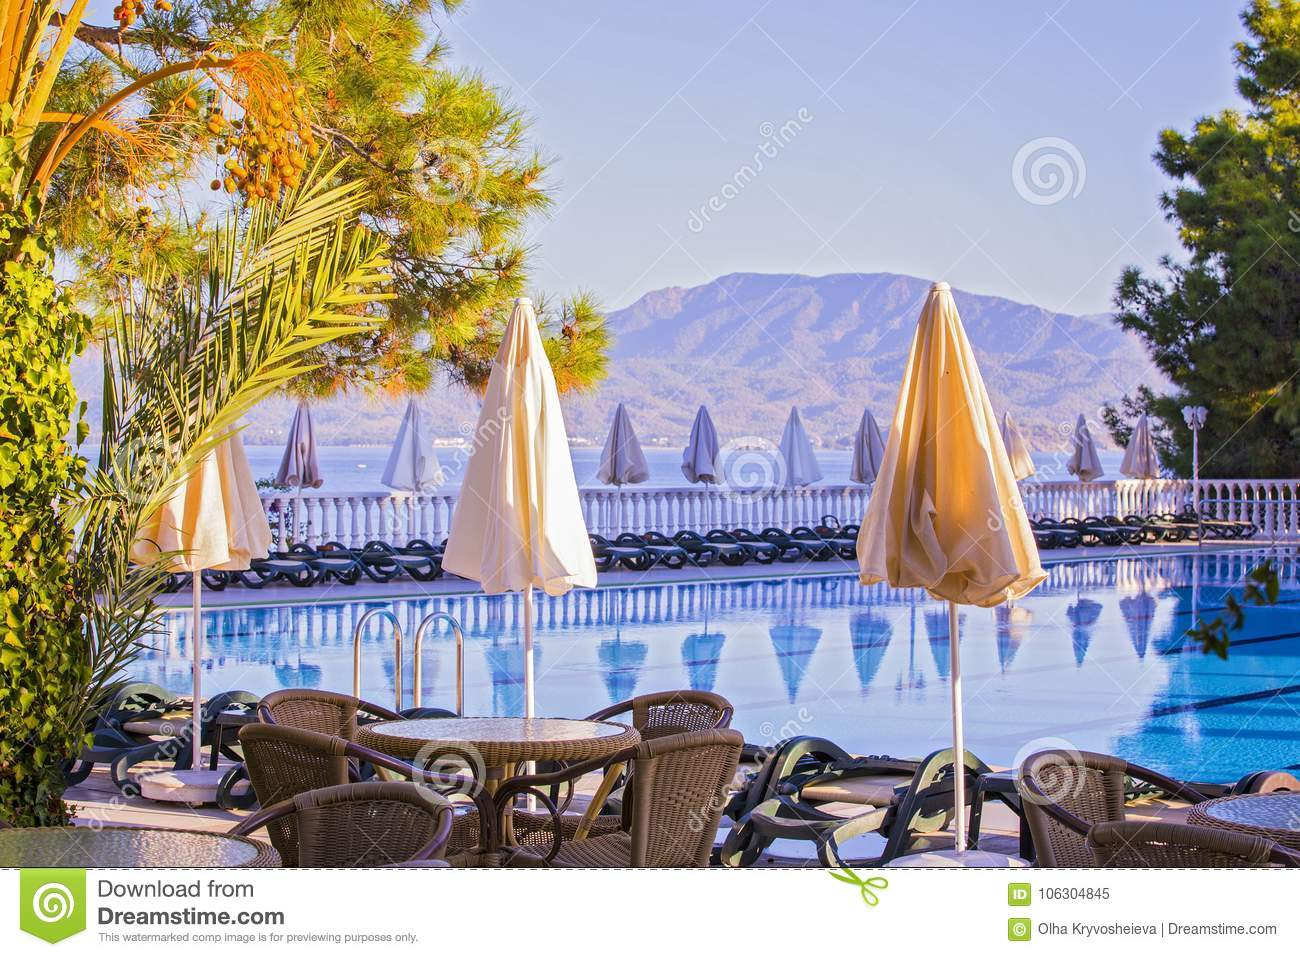 Download Comfortable High Rise Hotel. Empty Hotel, Swimming Pool, Sea, Palm